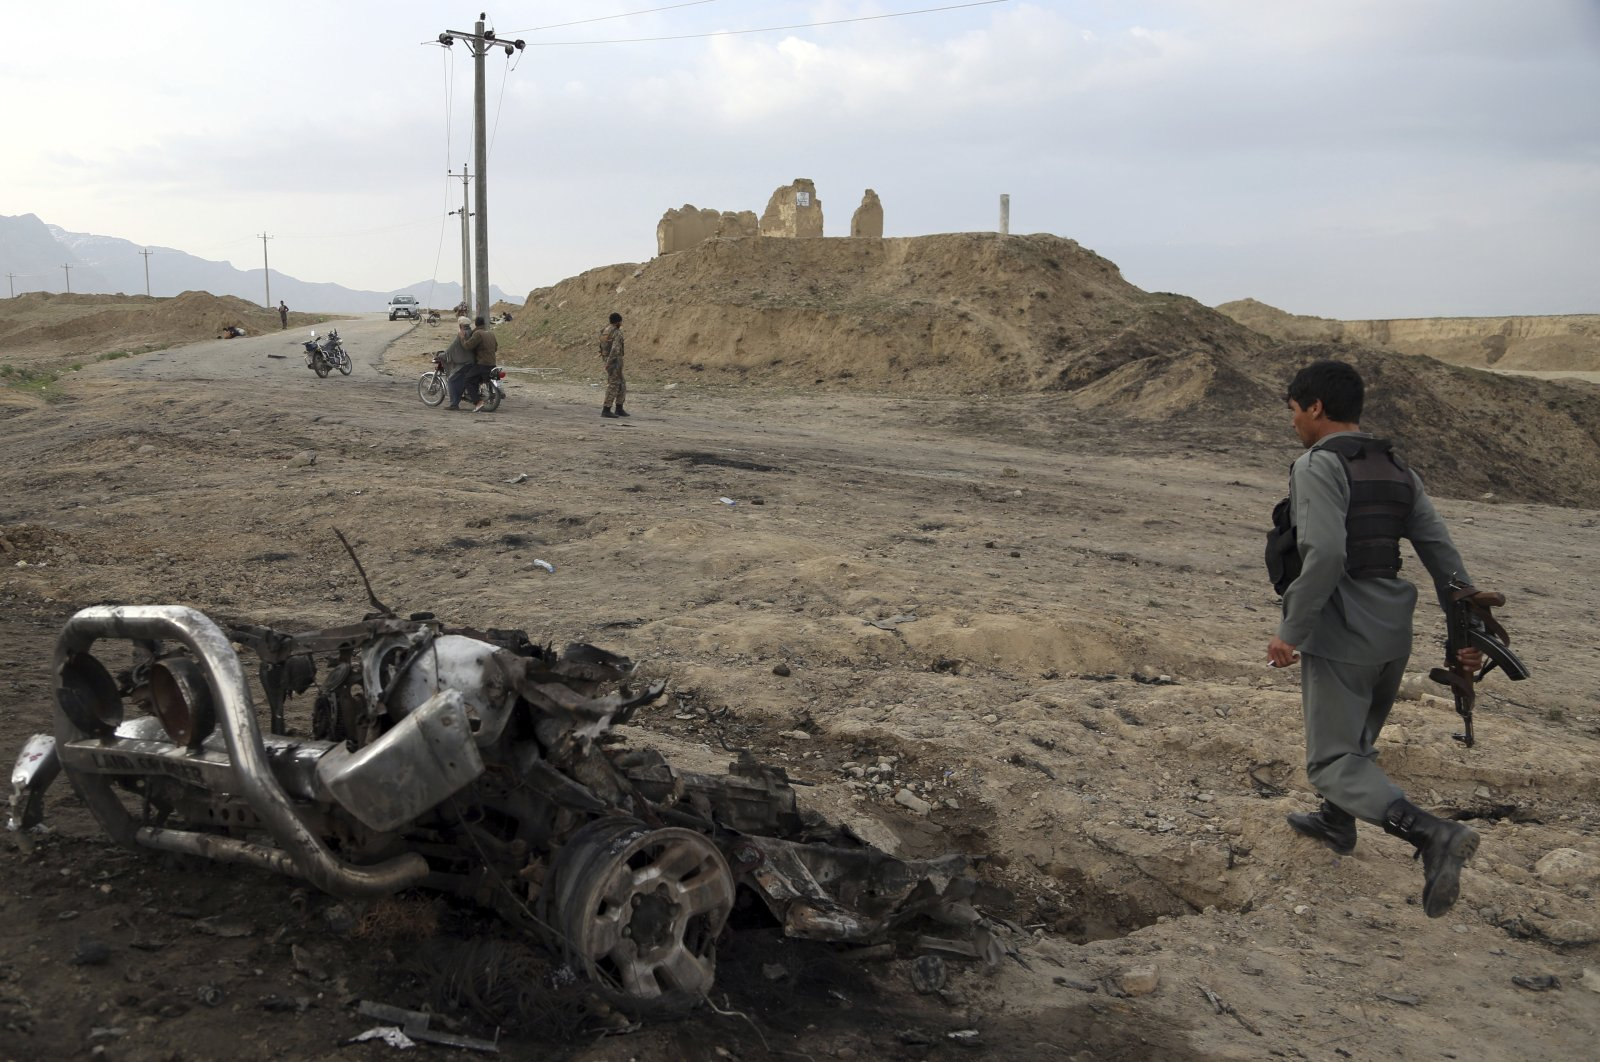 Afghan security forces gather at the site of an attack near the Bagram airbase, Kabul, April 9, 2019. (AP Photo)